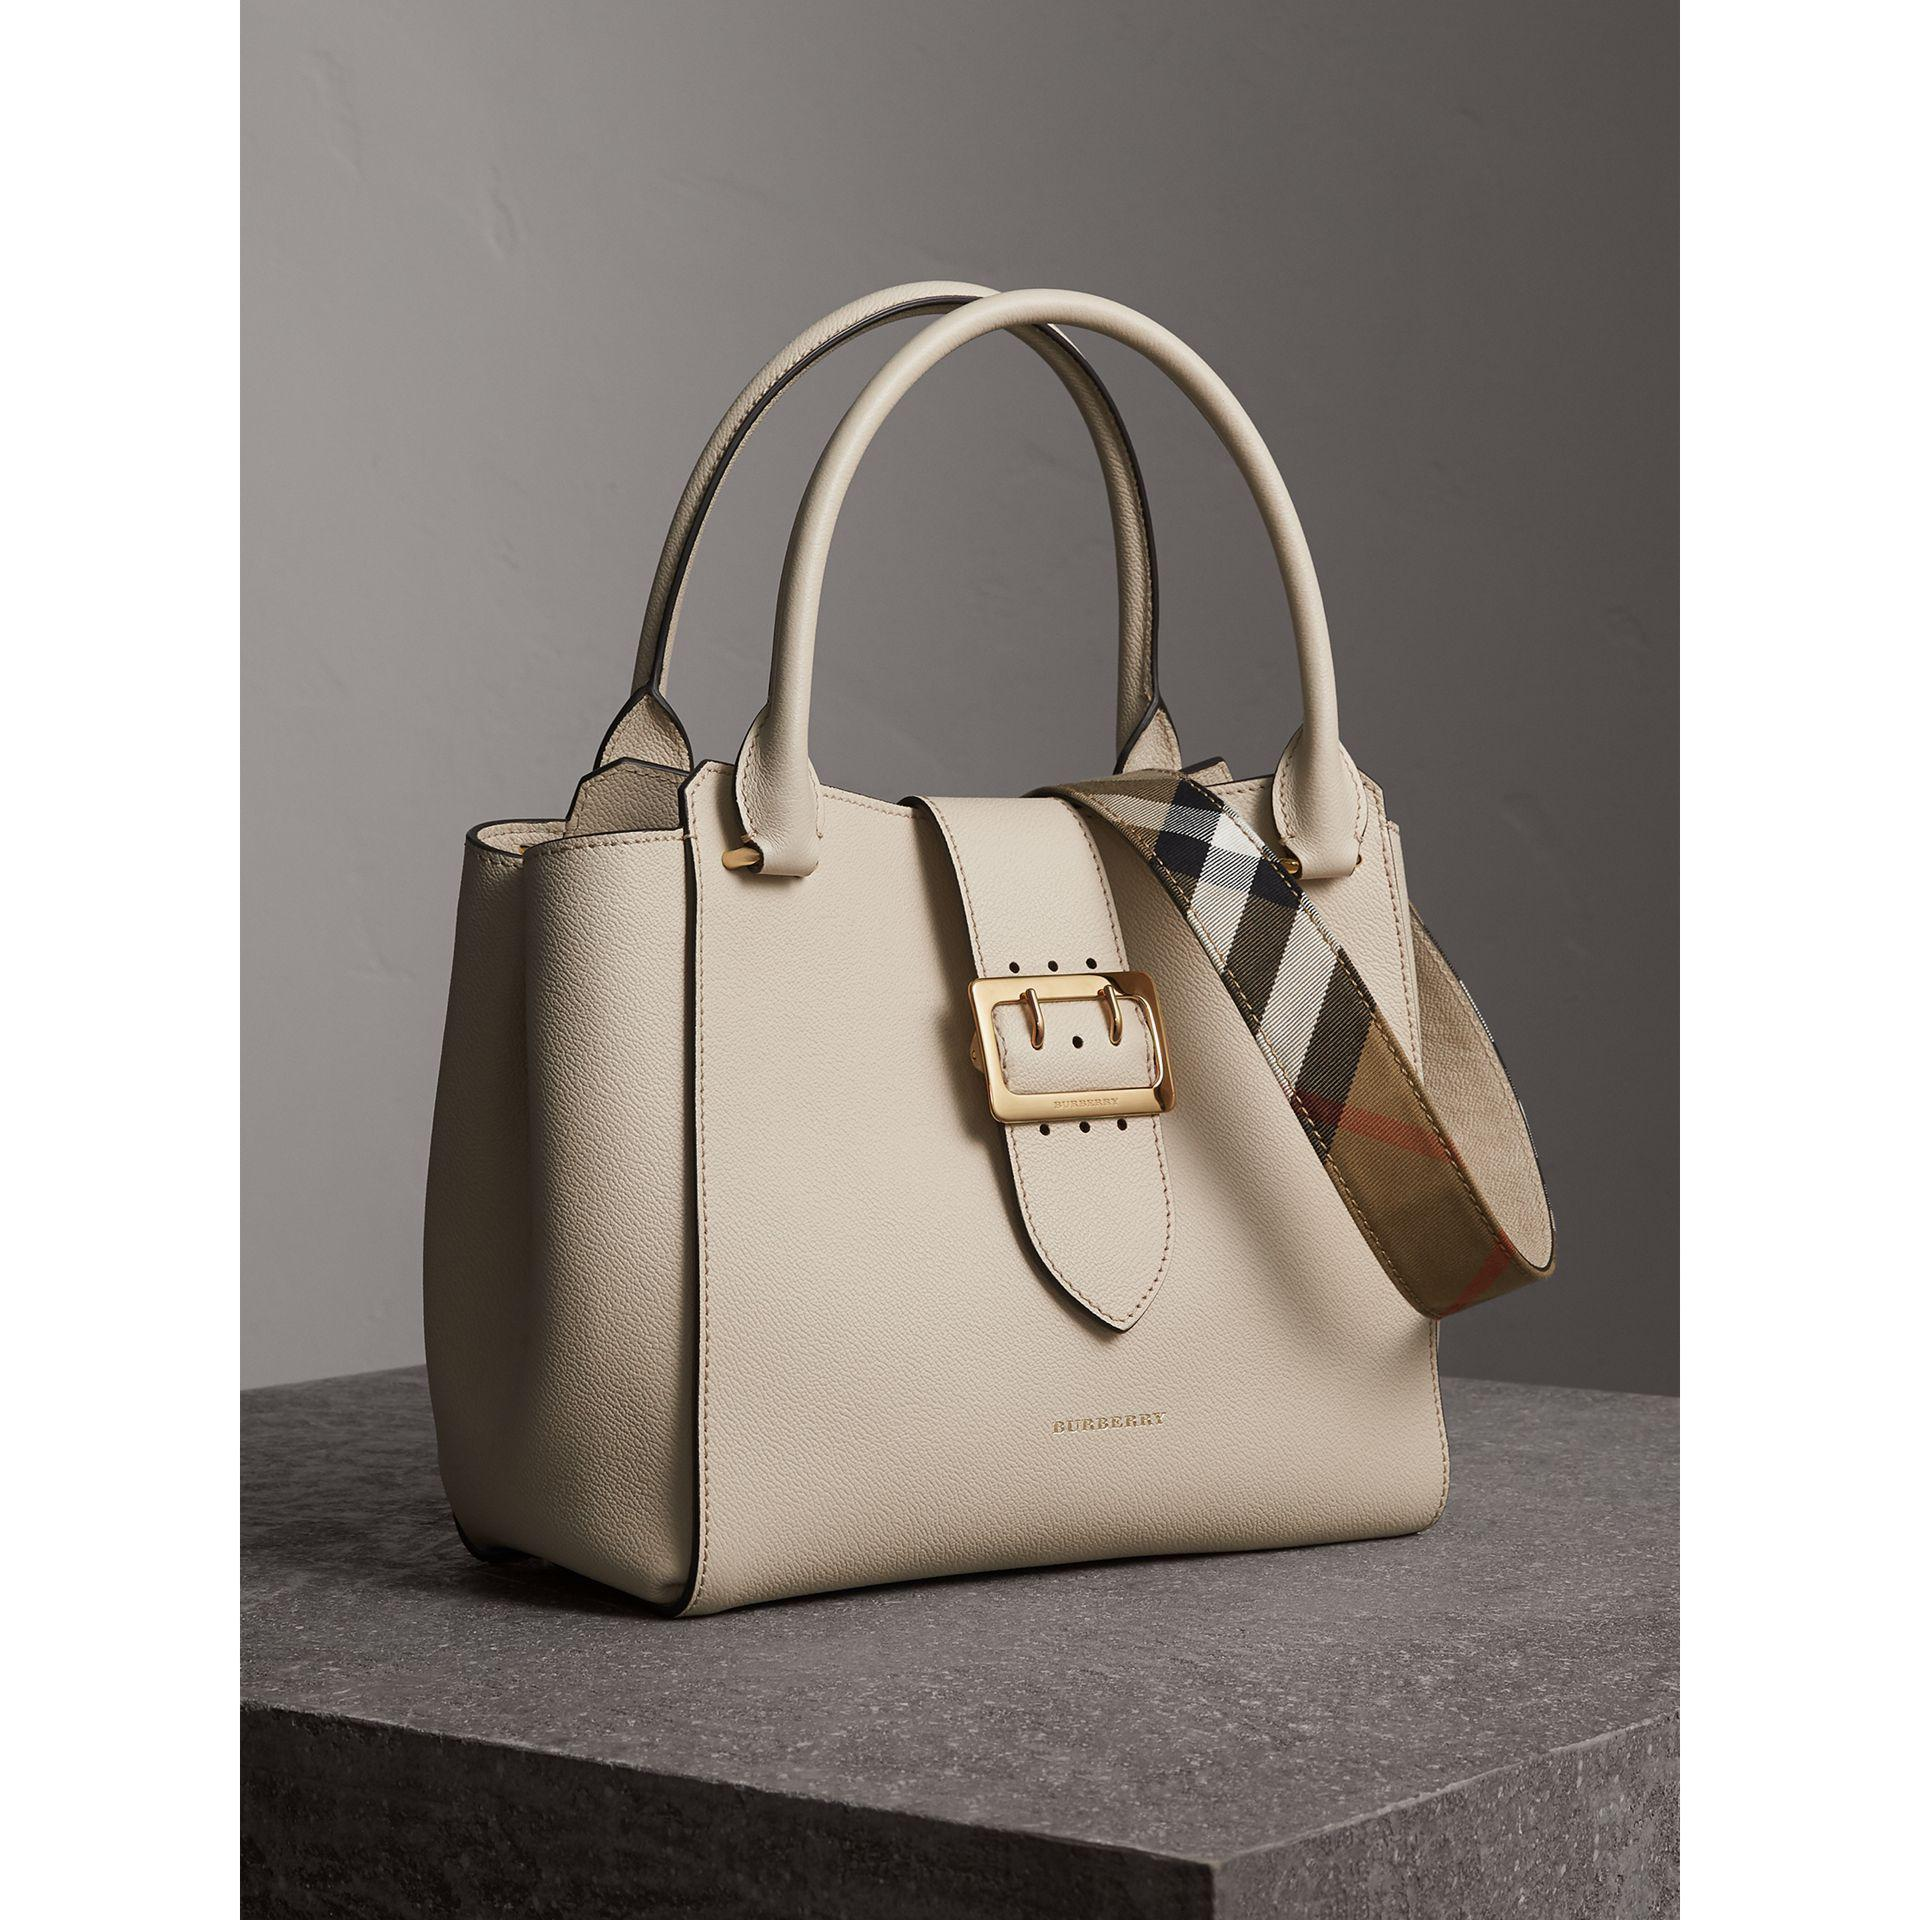 5d46fb9f500f Lyst - Burberry The Medium Buckle Tote In Grainy Leather Limestone